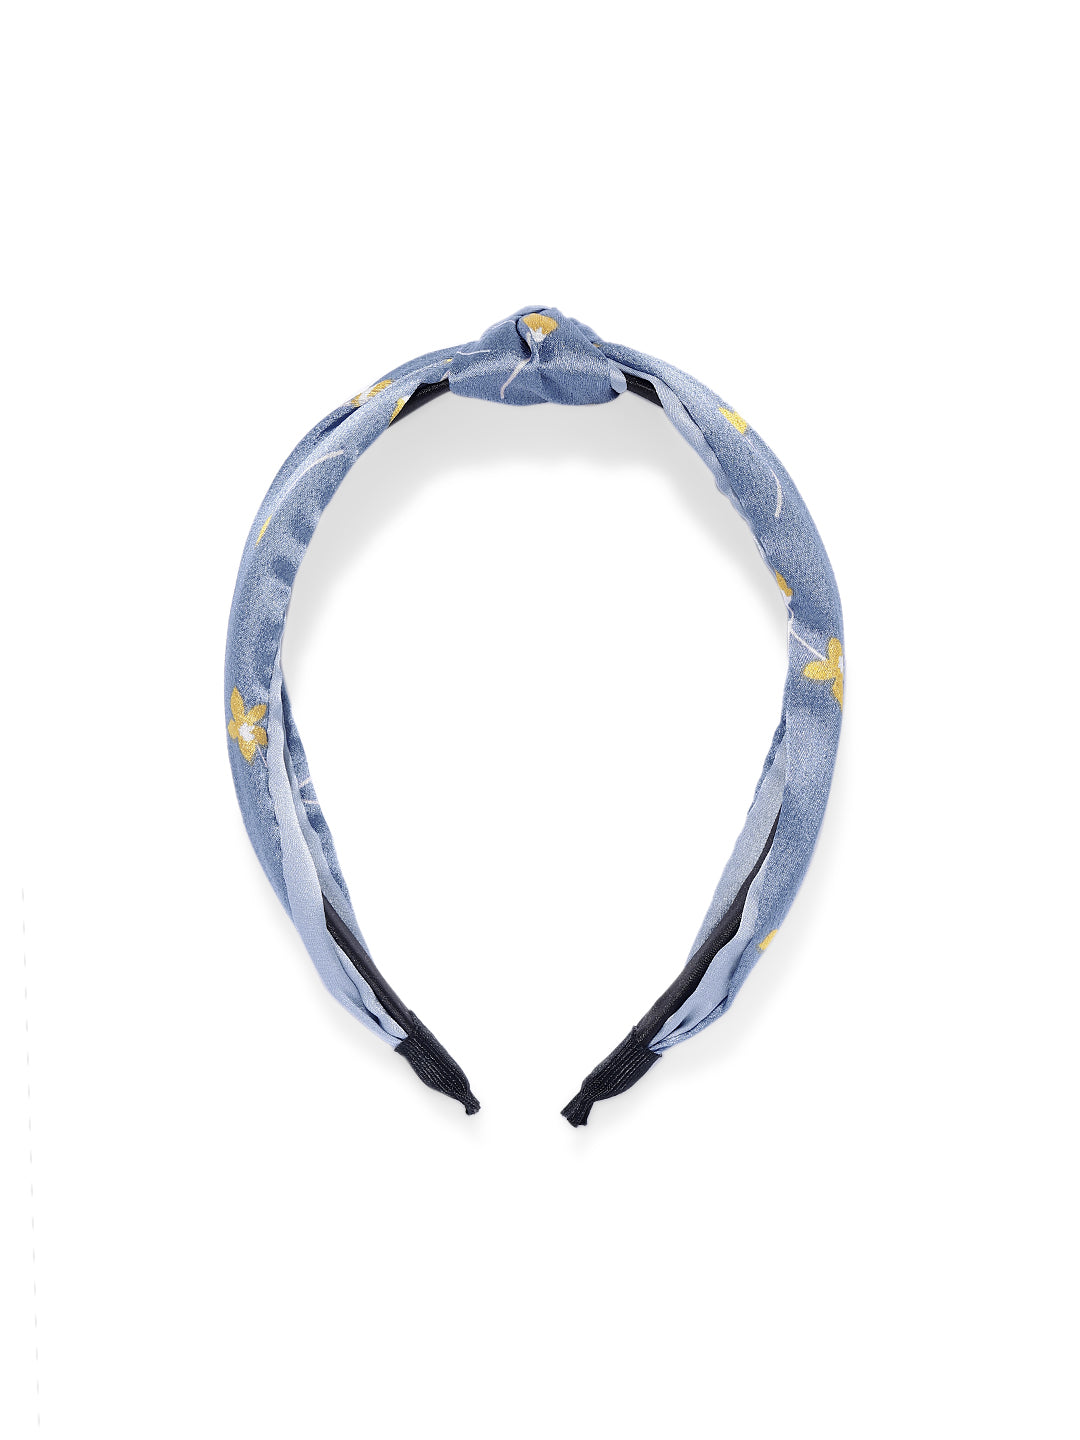 Vegan Handmade Knotted Hairband in Sky Blue